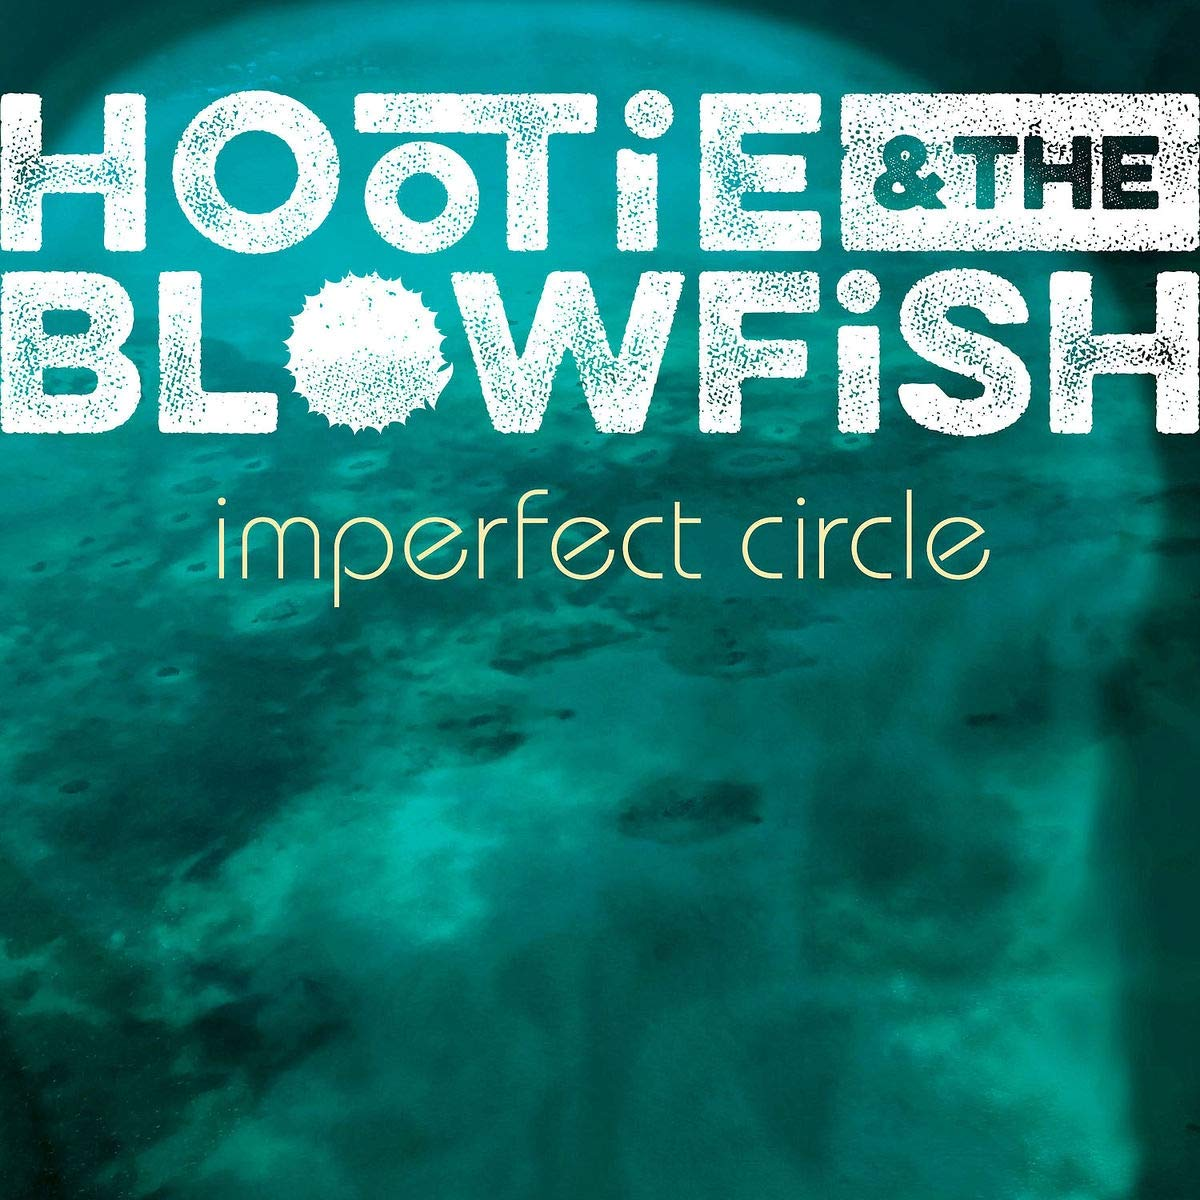 Hootie Blowfish Imperfect Circle